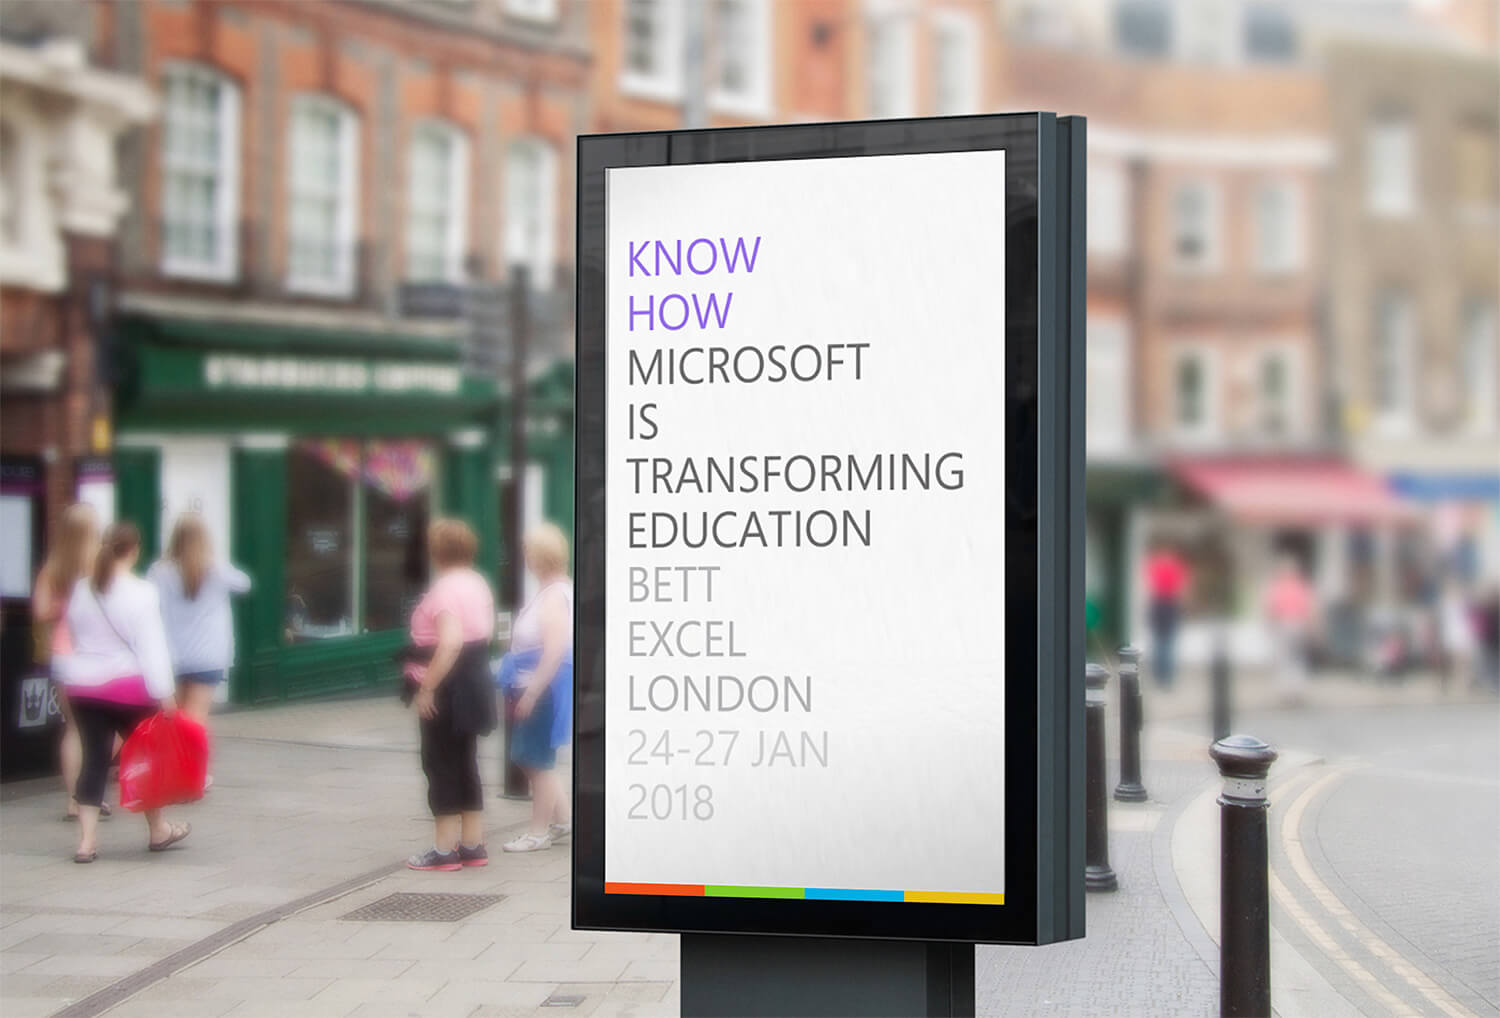 KnowHow-BETT-Conference-Poster-IMage.jpg